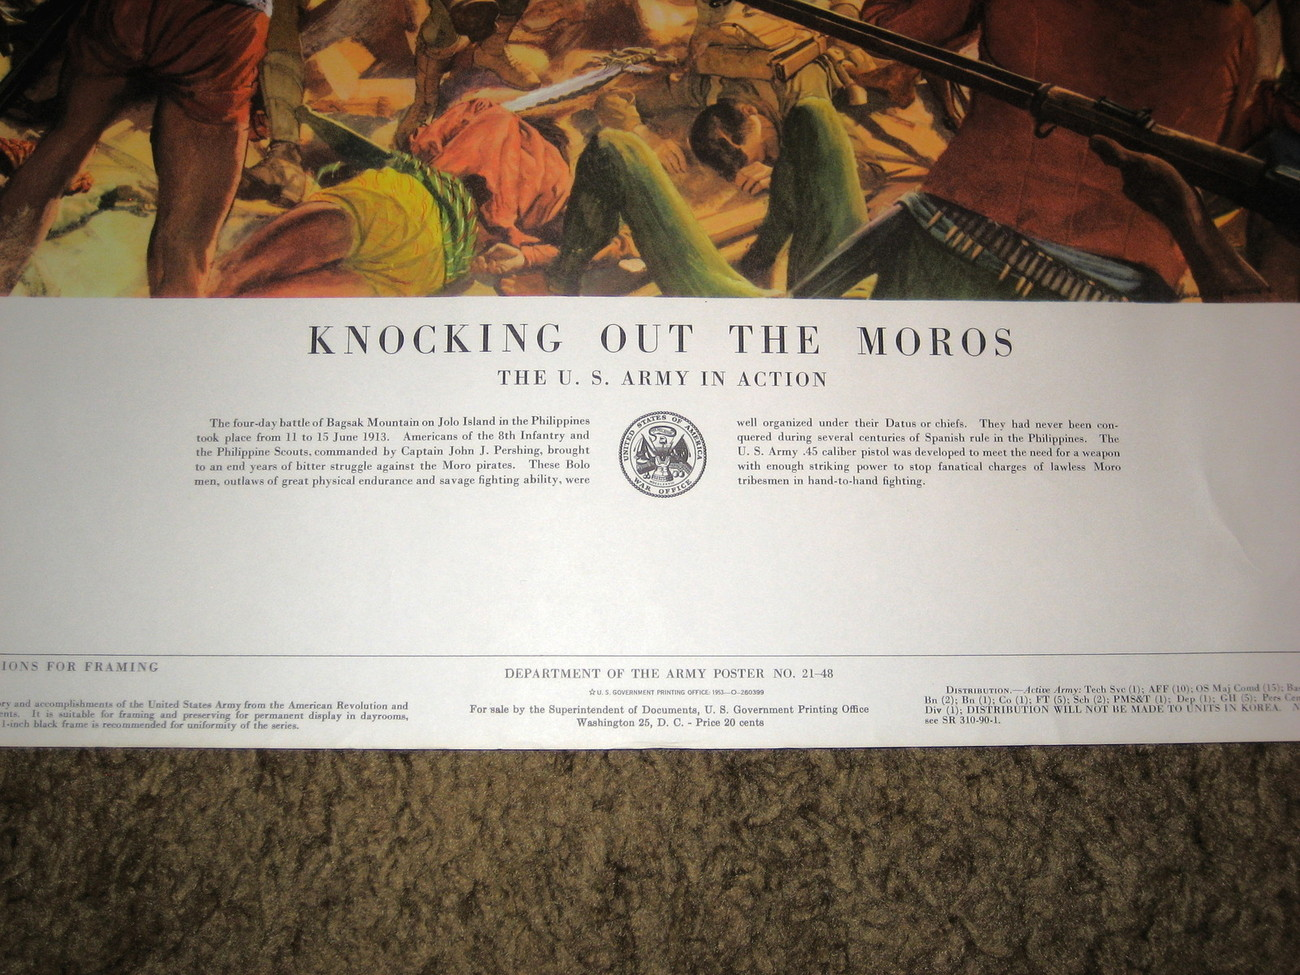 1953 U.S.Army Poster21-48-- Knocking Out The Moros